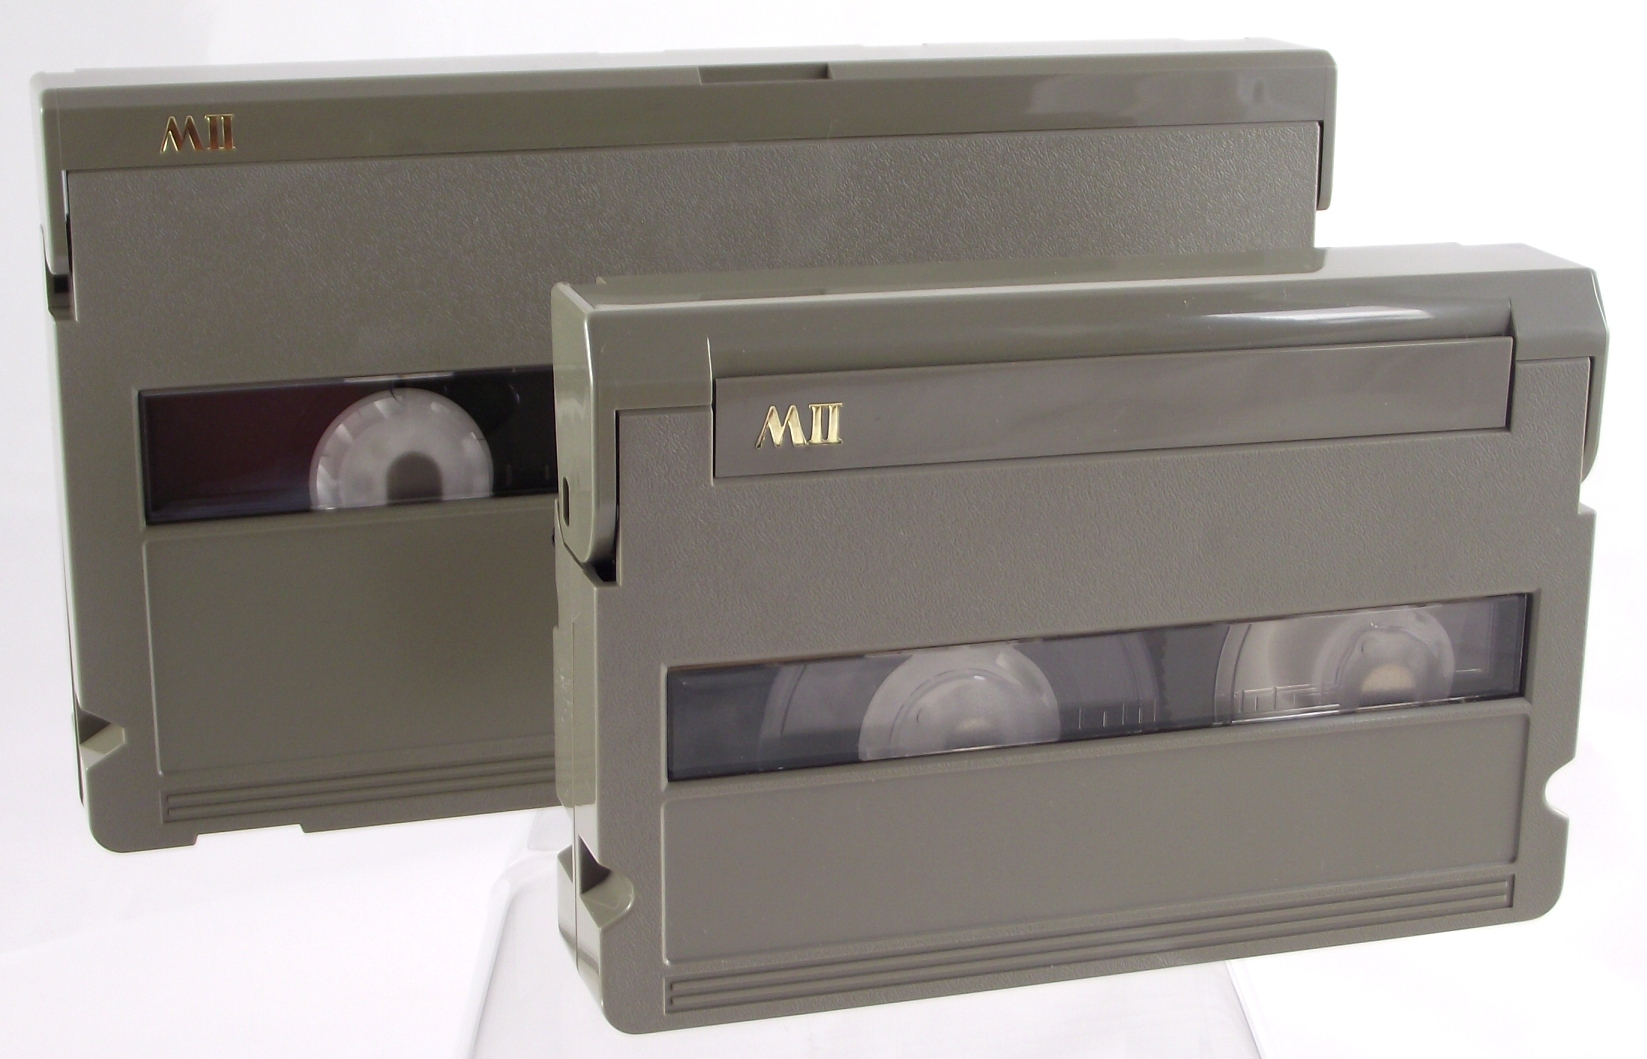 Size comparison between the two MII tape formats. Large versus compact.